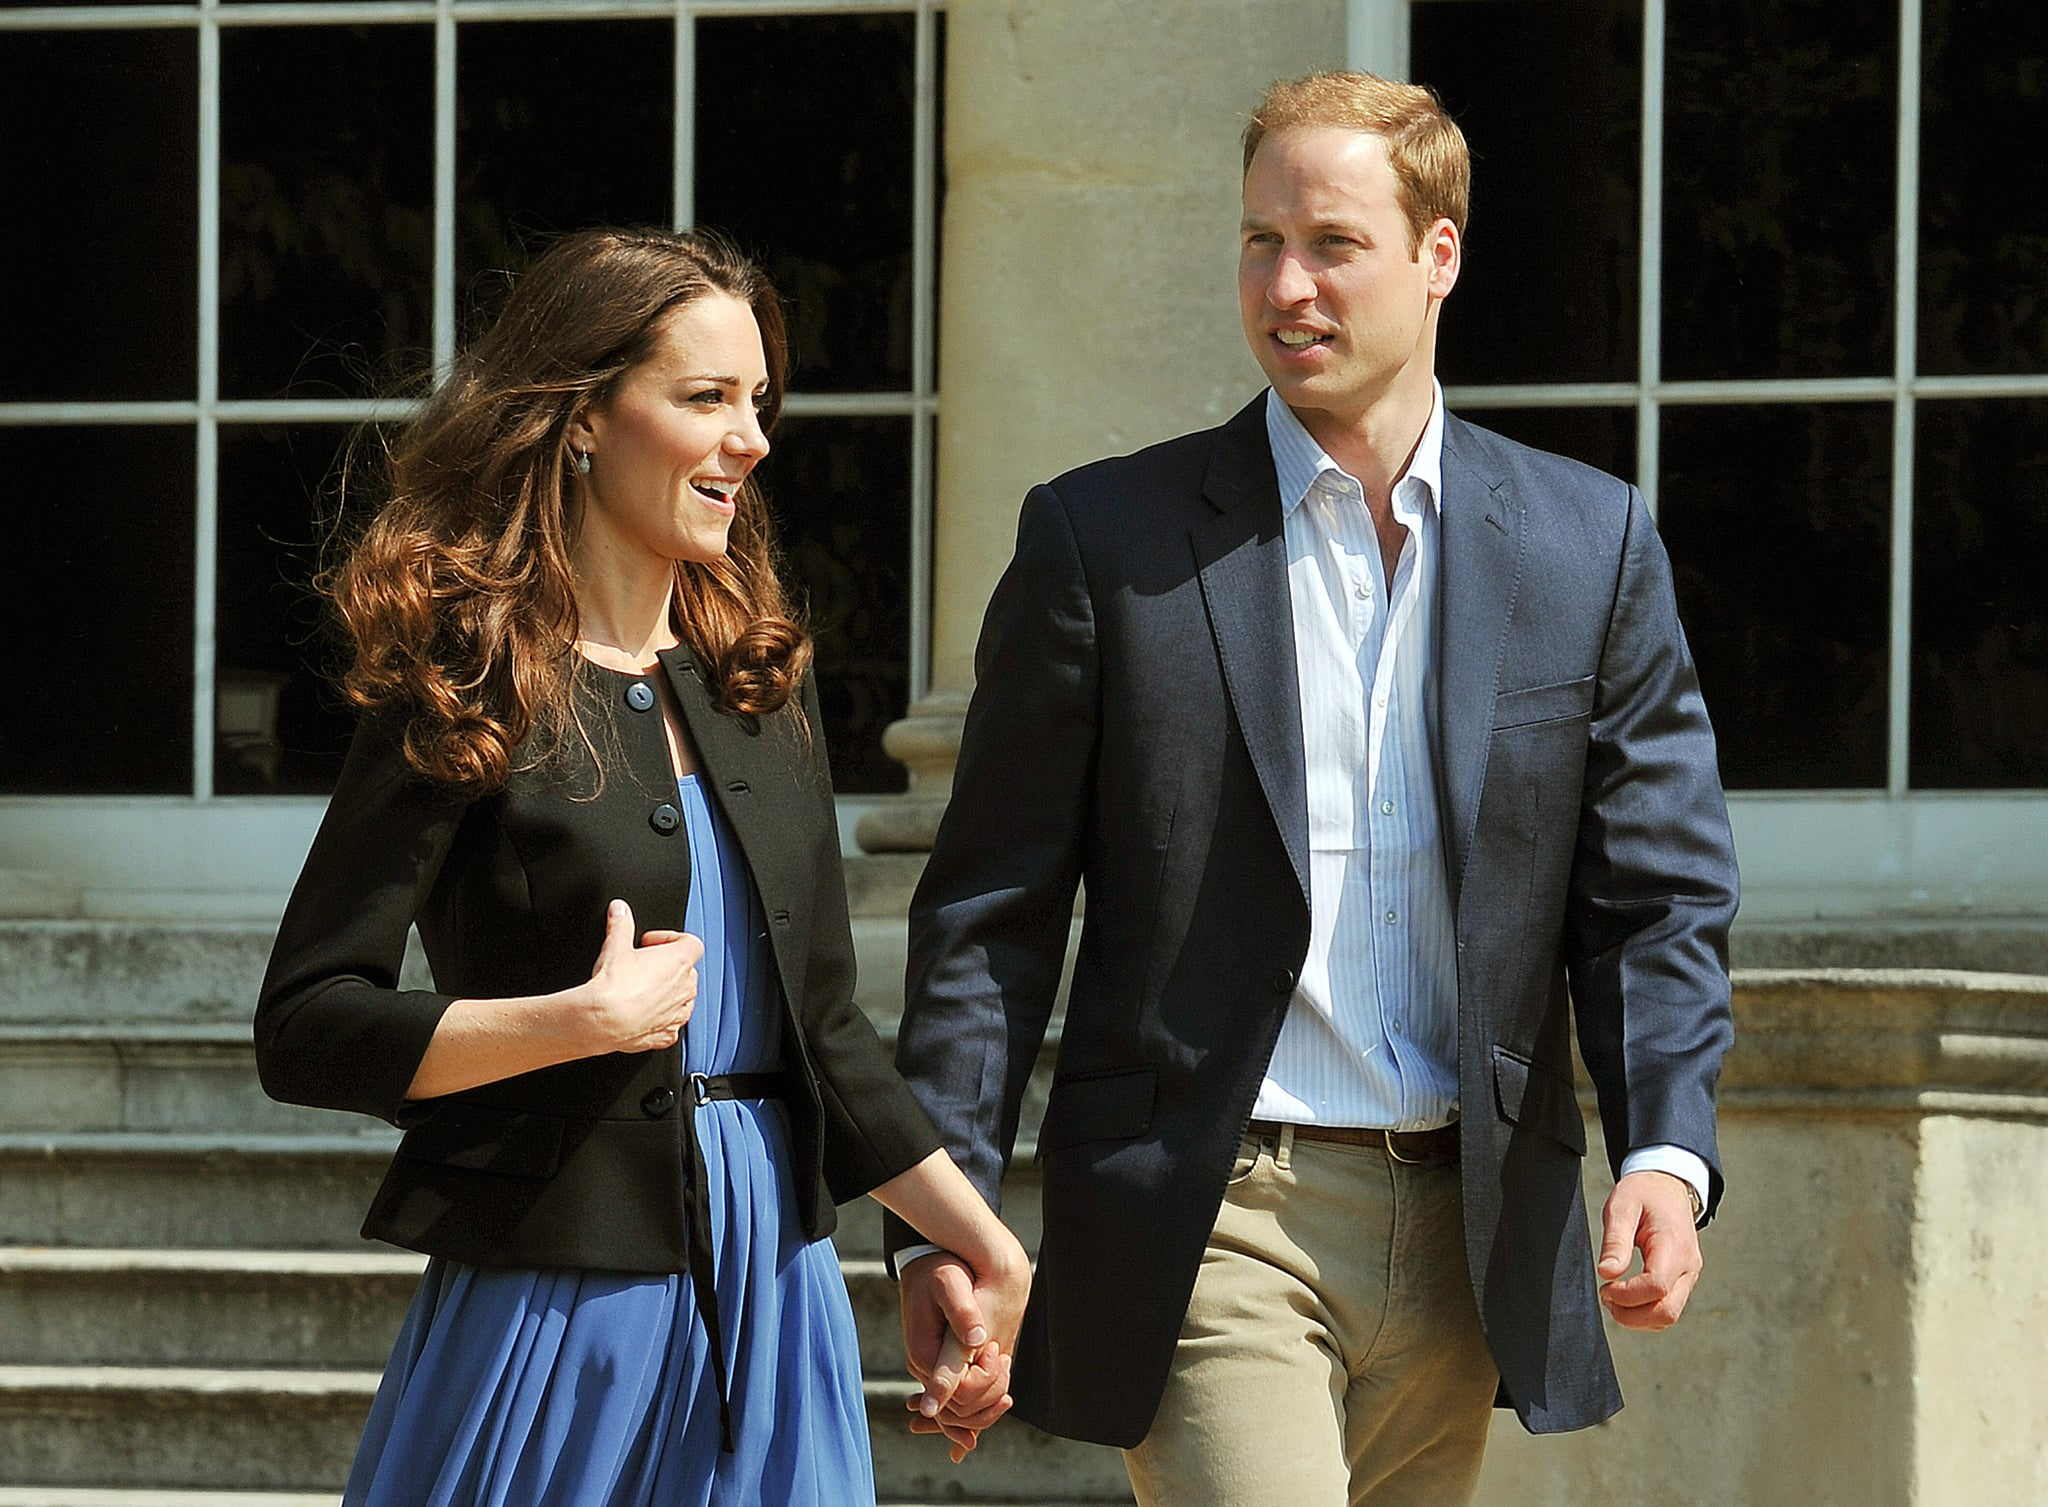 The pair held hands as they left Buckingham Palace the morning after their 2011 wedding.